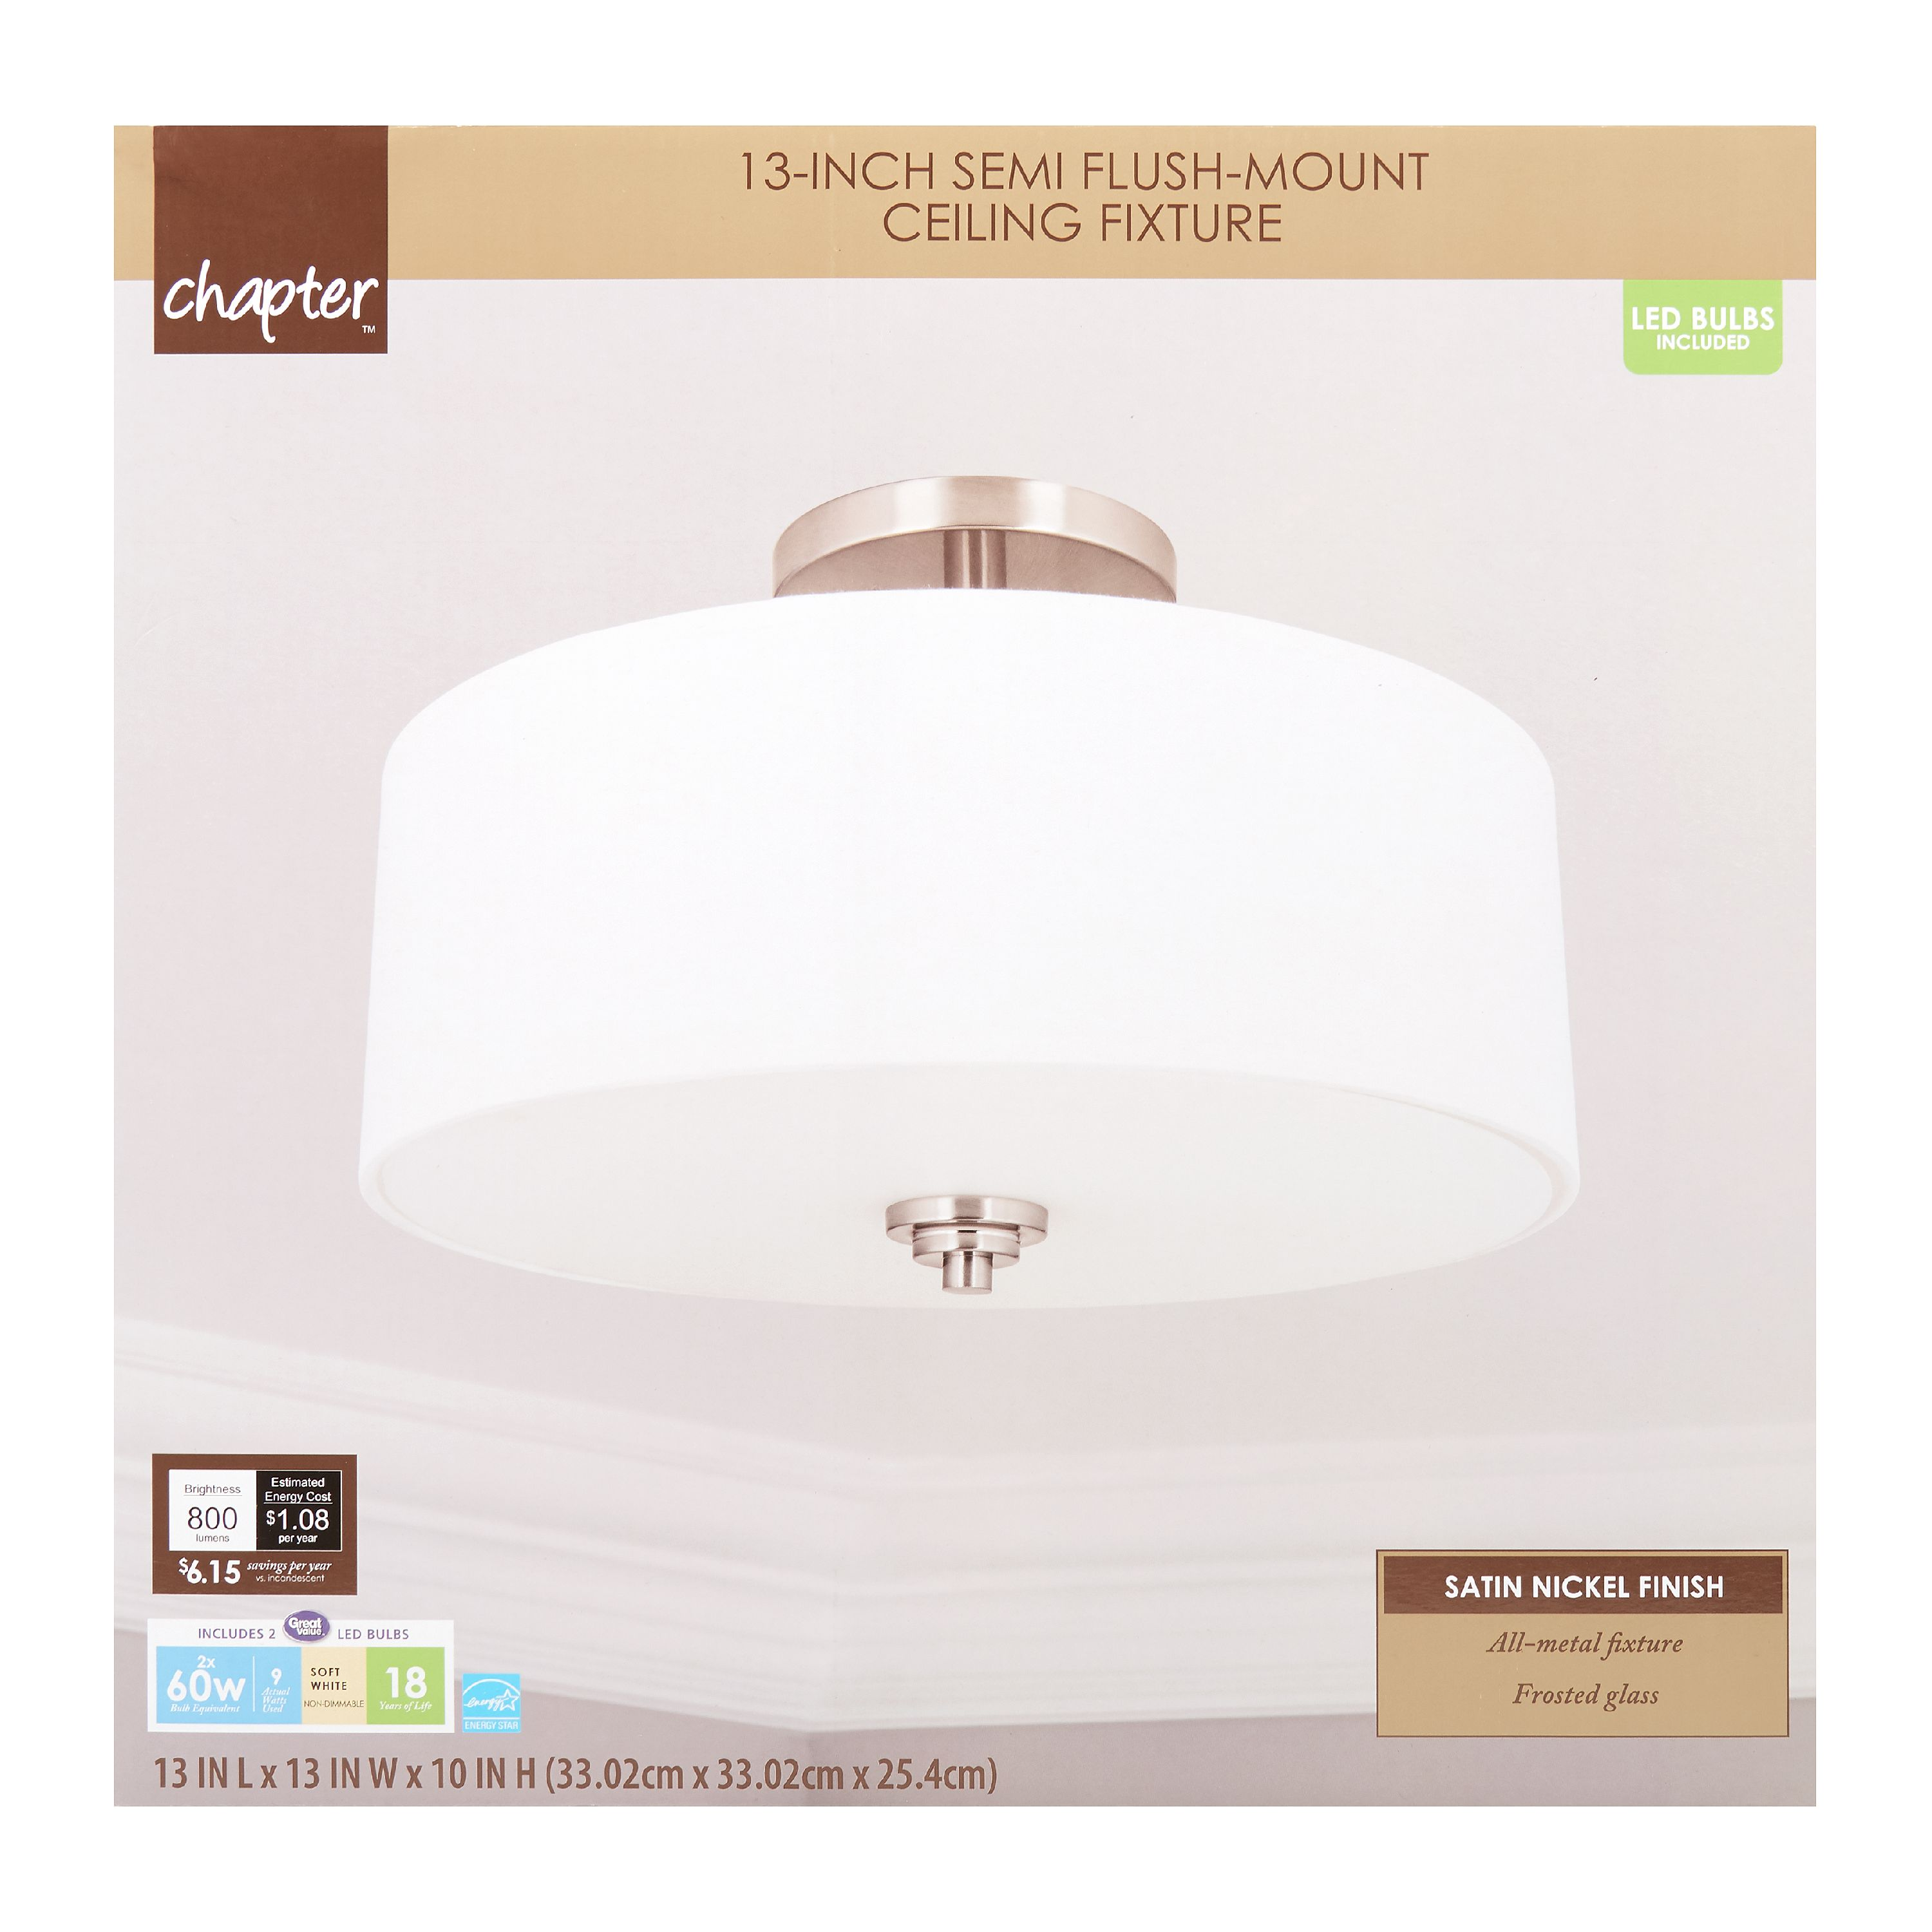 "Chapter 13"" LED Decorative Semi Flush-Mount Ceiling Fixture, Satin Nickel"